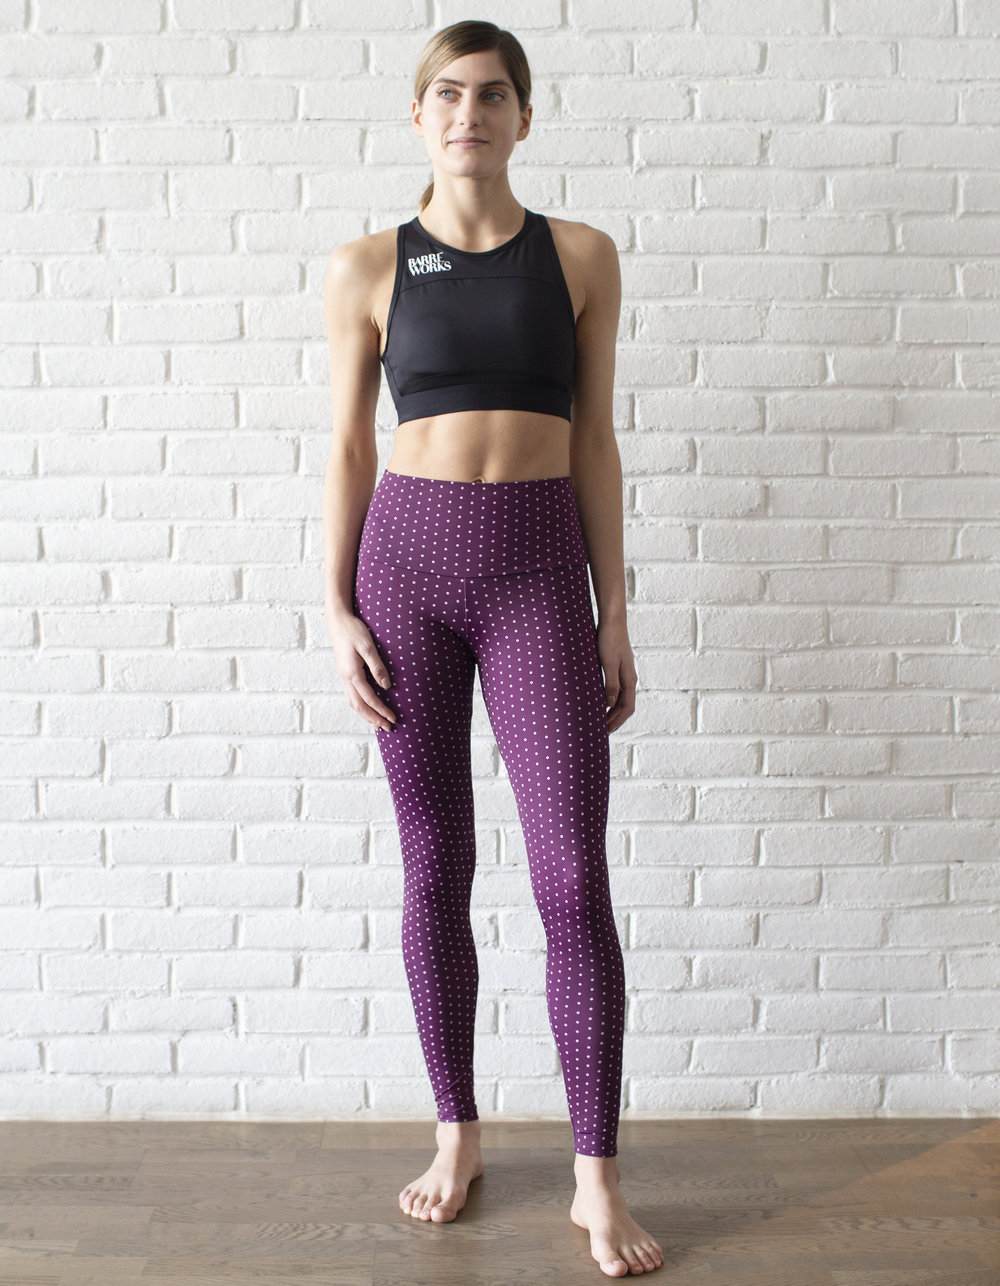 leggings2-1.jpg